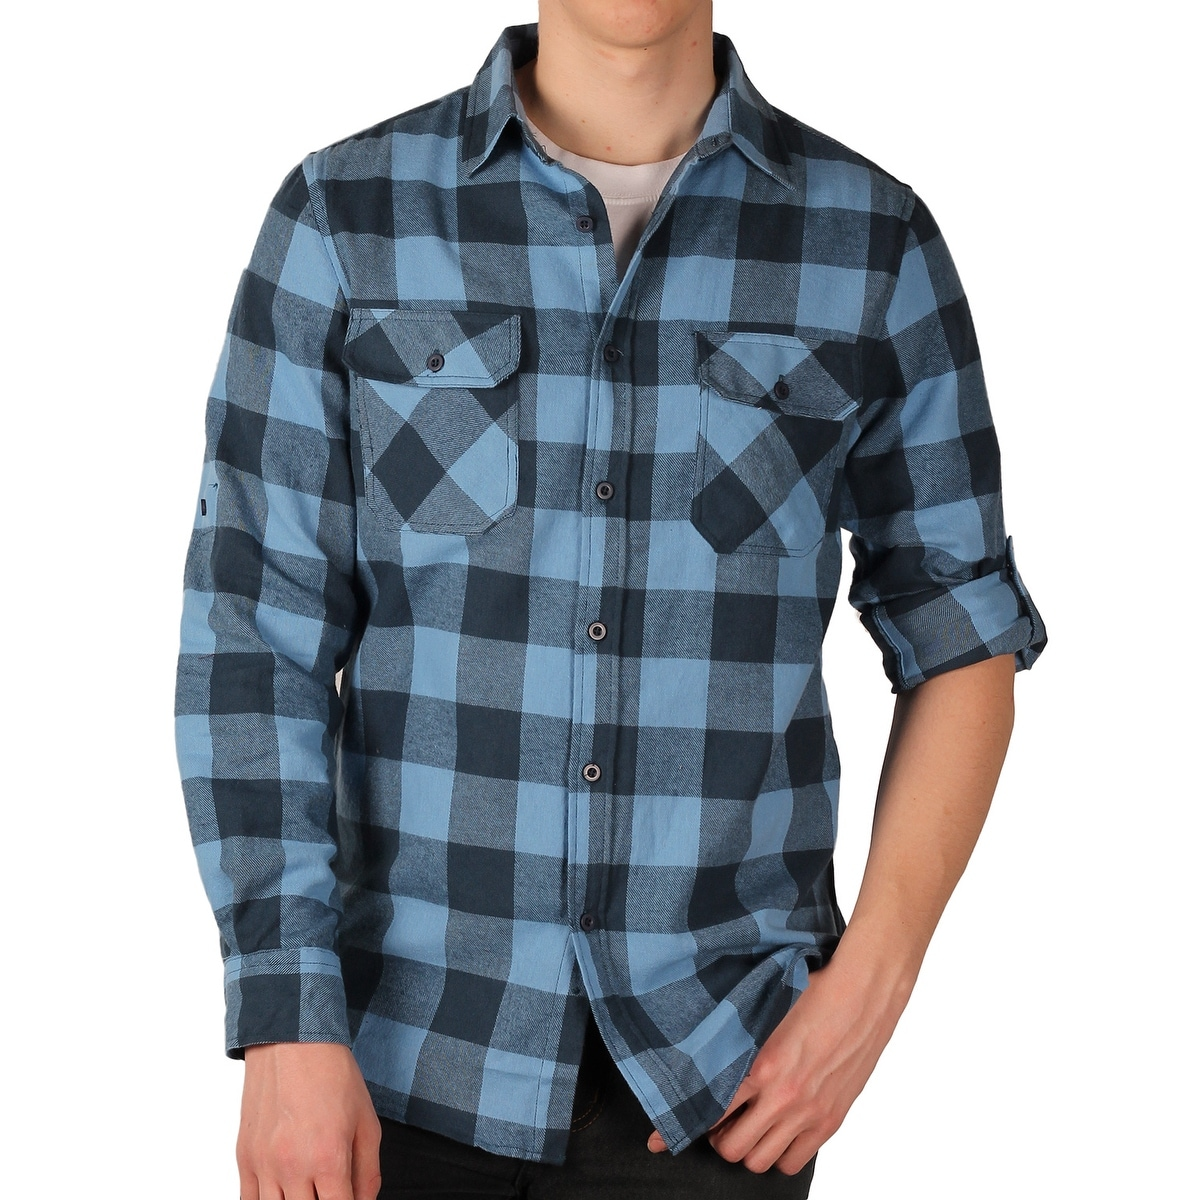 2172605f25f7 Shop Straight Faded Men's Roll-Sleeve Flannel Shirt - Free Shipping On  Orders Over $45 - Overstock - 14466366